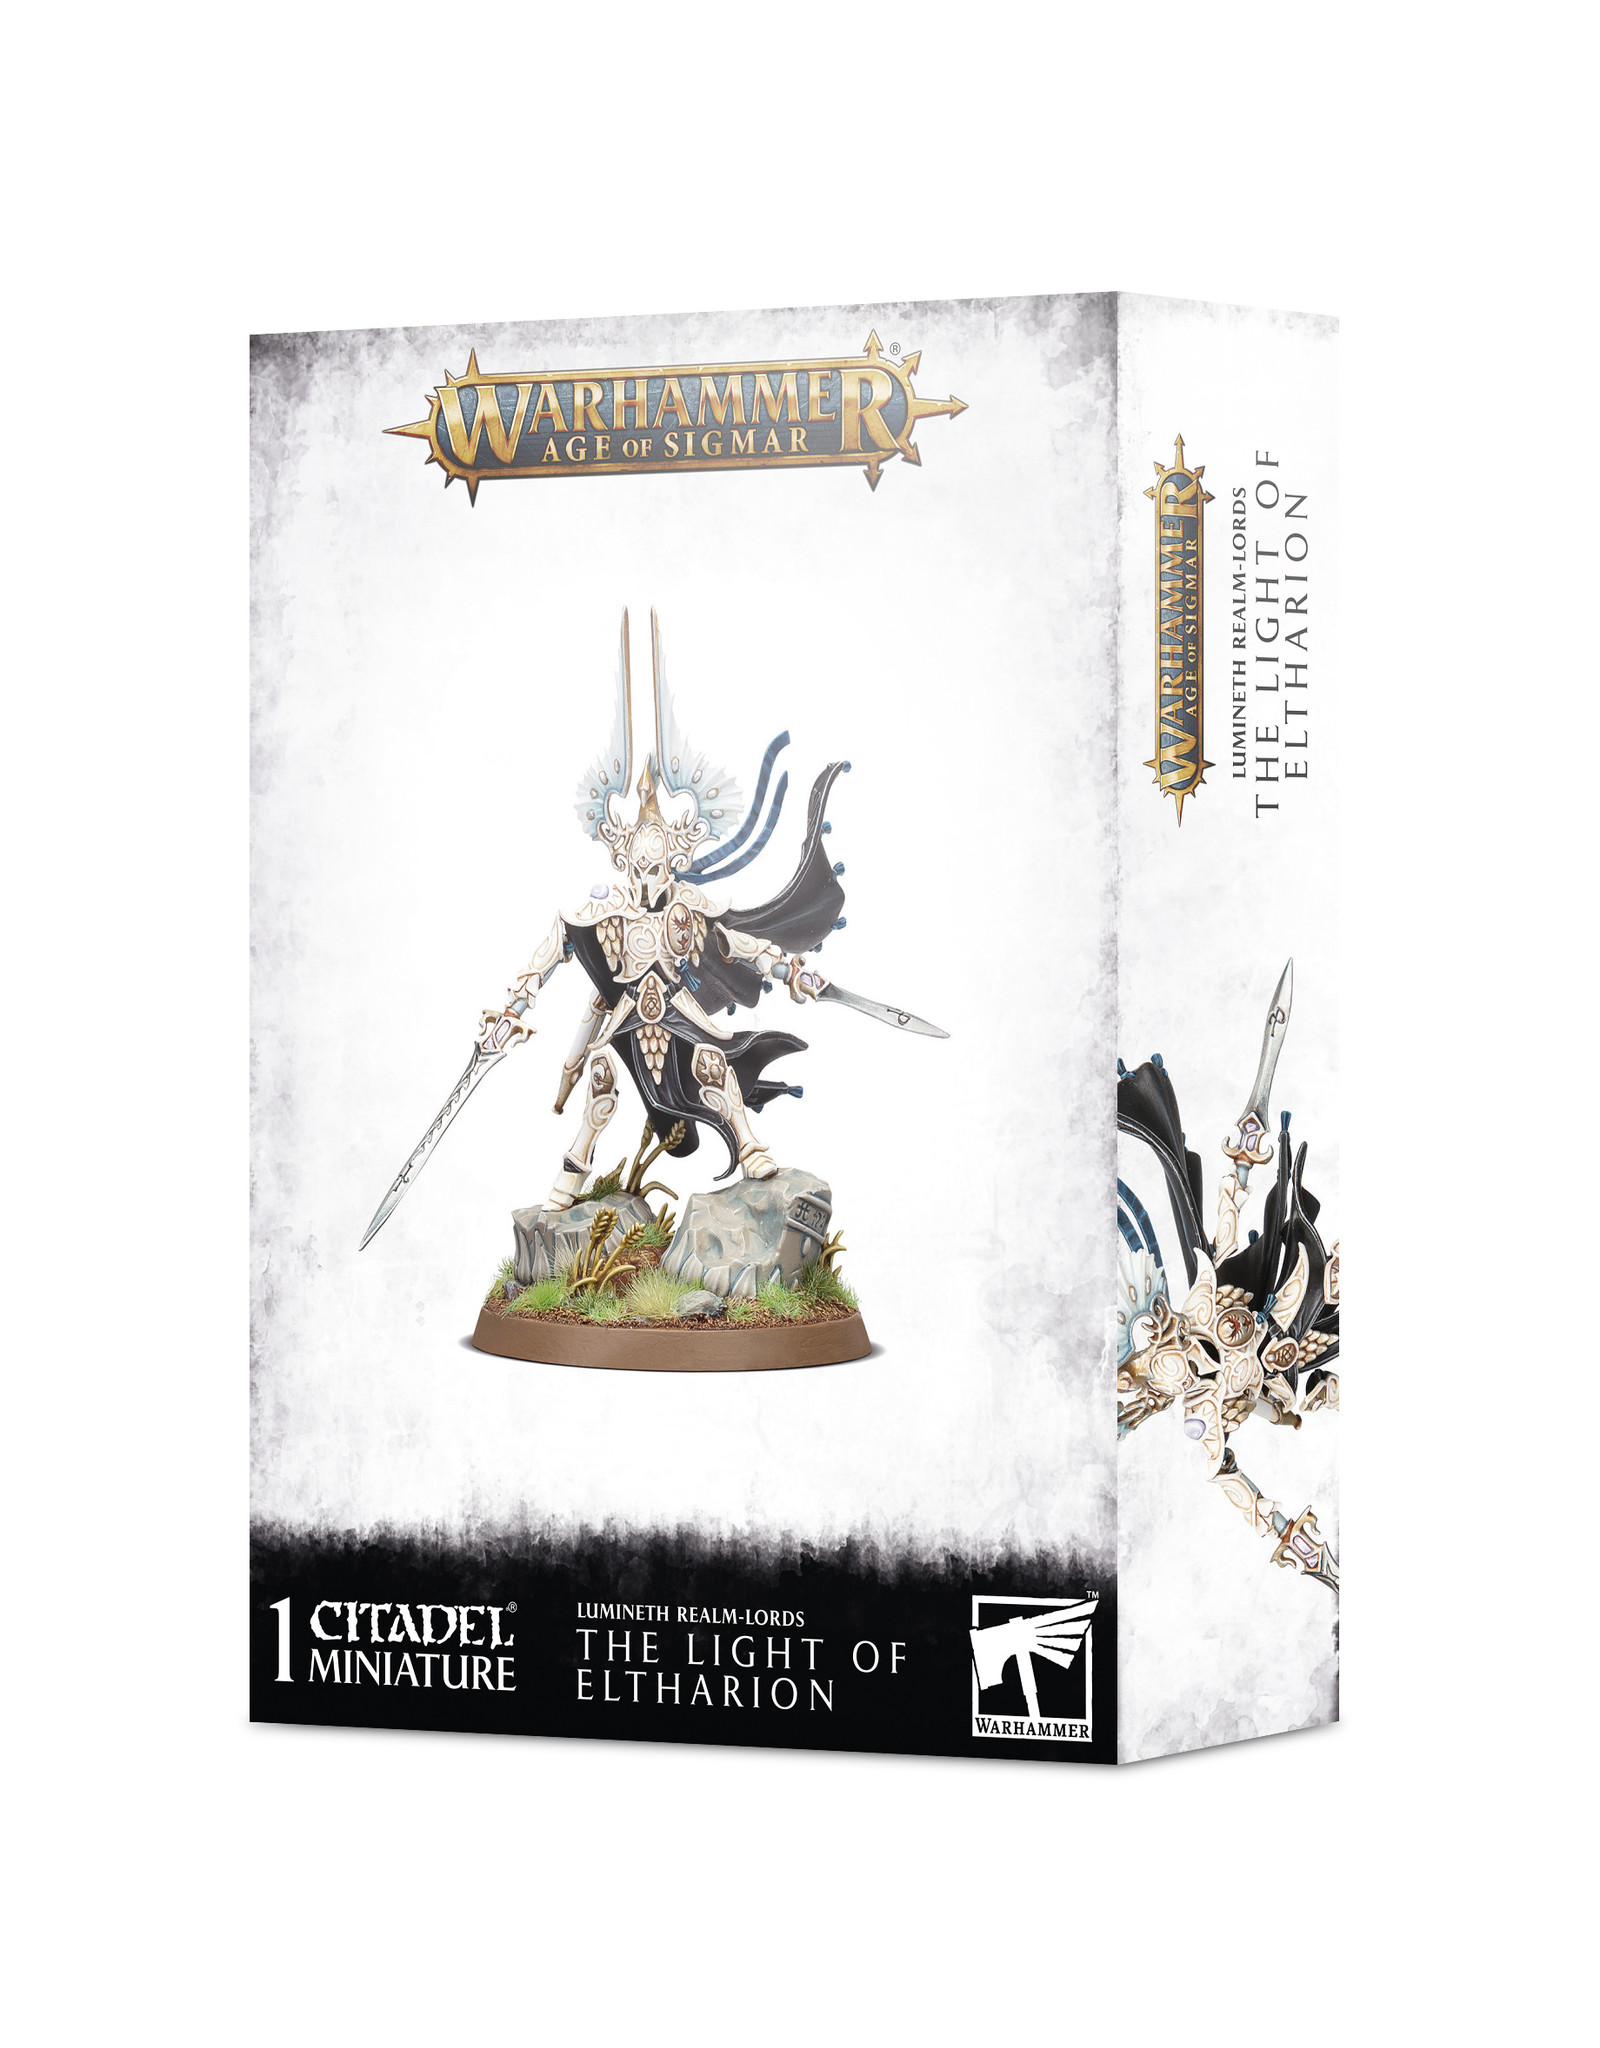 Age of Sigmar Lumineth Realm-Lords: The Light of Eltharion